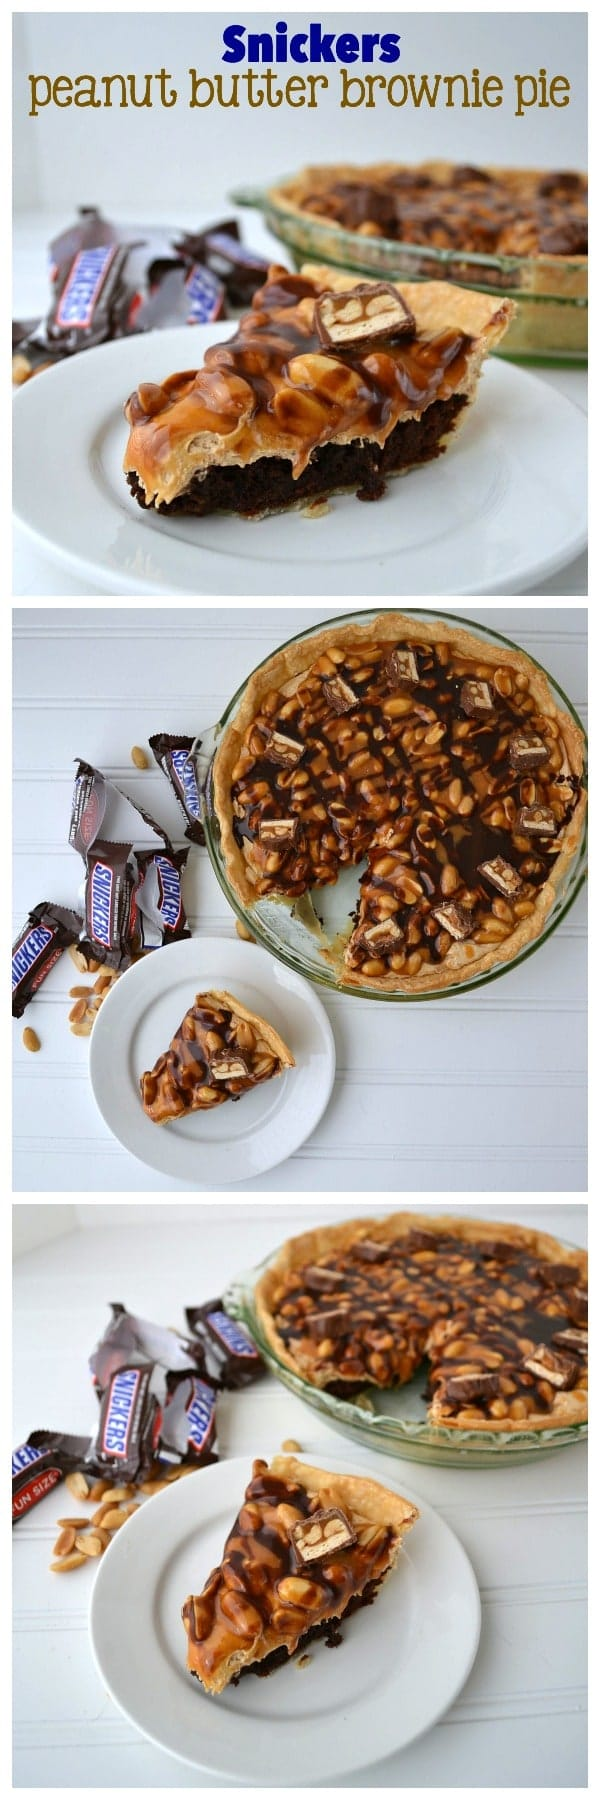 Snickers Peanut Butter Brownie Pie